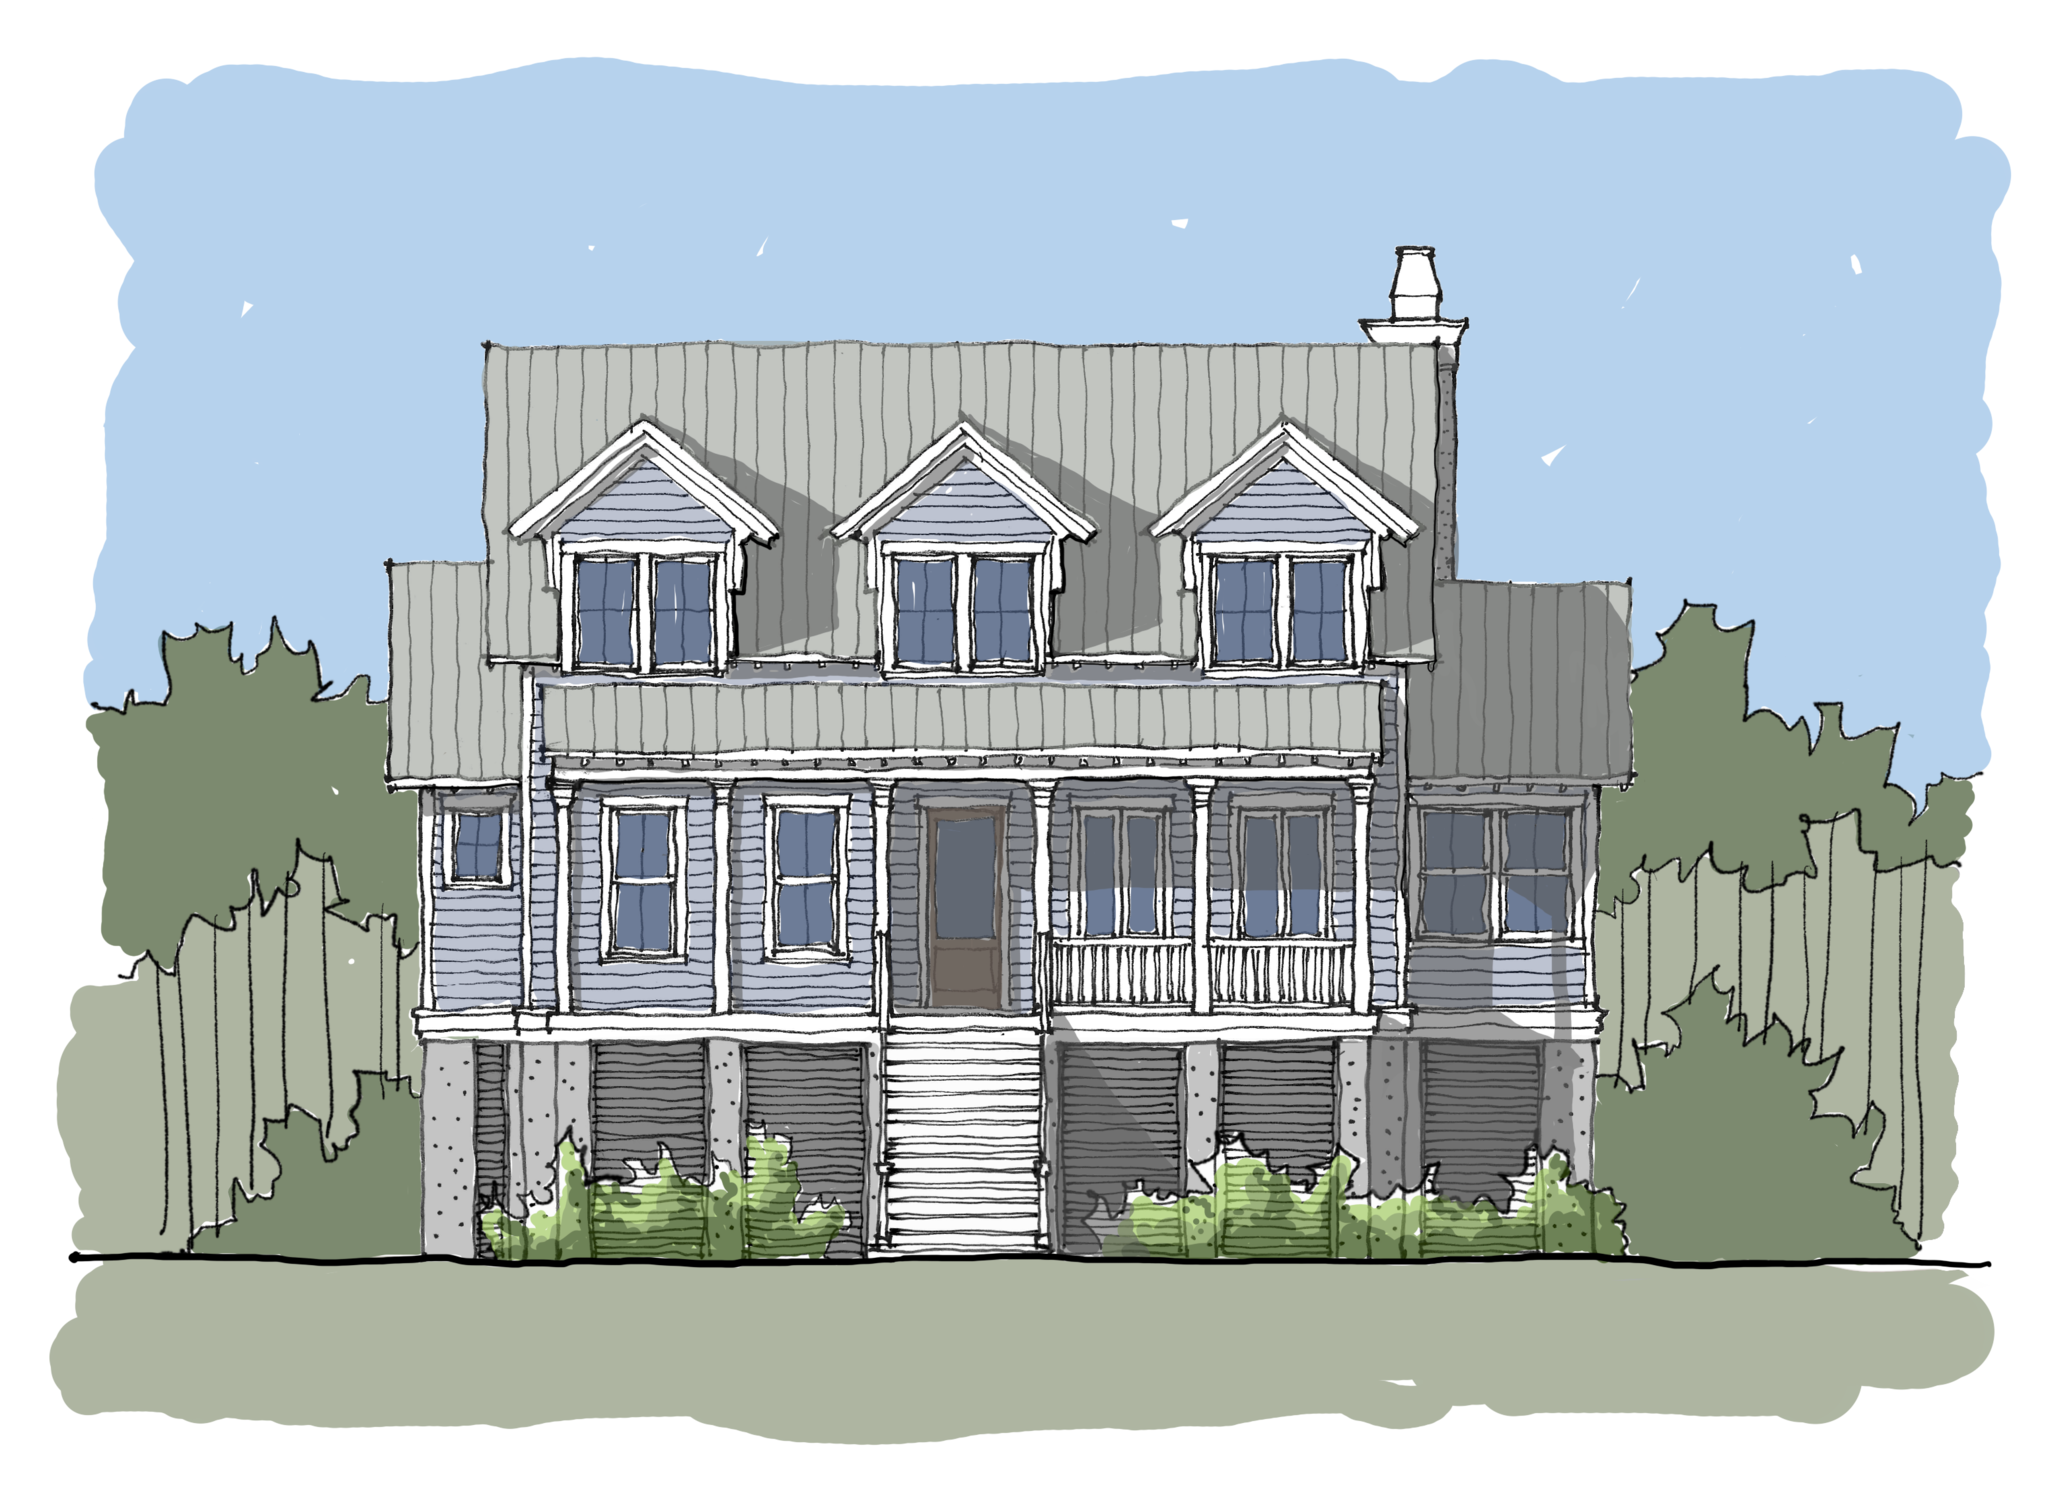 Oyster Bay — Flatfish Island Designs — Coastal Home Plans on front exterior home designs, covered front entry designs, exterior front entry designs, front door entry designs, front entry way designs, front entry courtyard designs, house front step designs, house front walkway designs, master bedroom entry designs, front entrance door designs, house front balcony designs, front porch designs, backyard entry designs, modern front door designs, house front design designs, residential front entry designs, home entrance doors designs, wooden front door designs, front of house designs, pergola front entry designs,